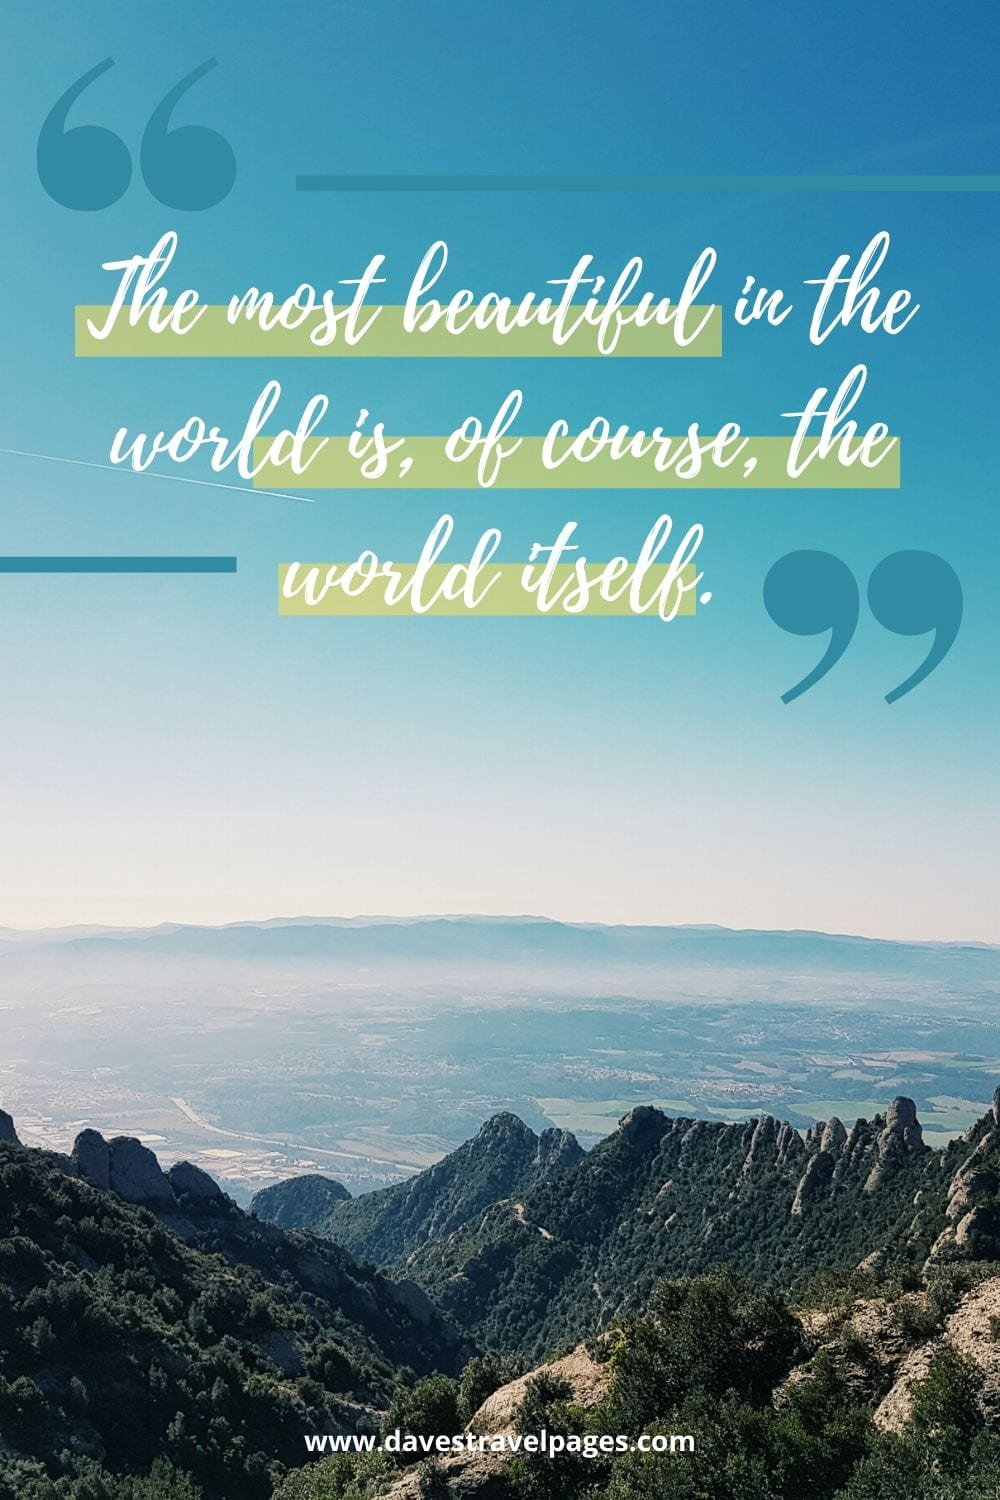 """Quotes about the world: """"The most beautiful in the world is, of course, the world itself."""" – Wallace Stevens"""